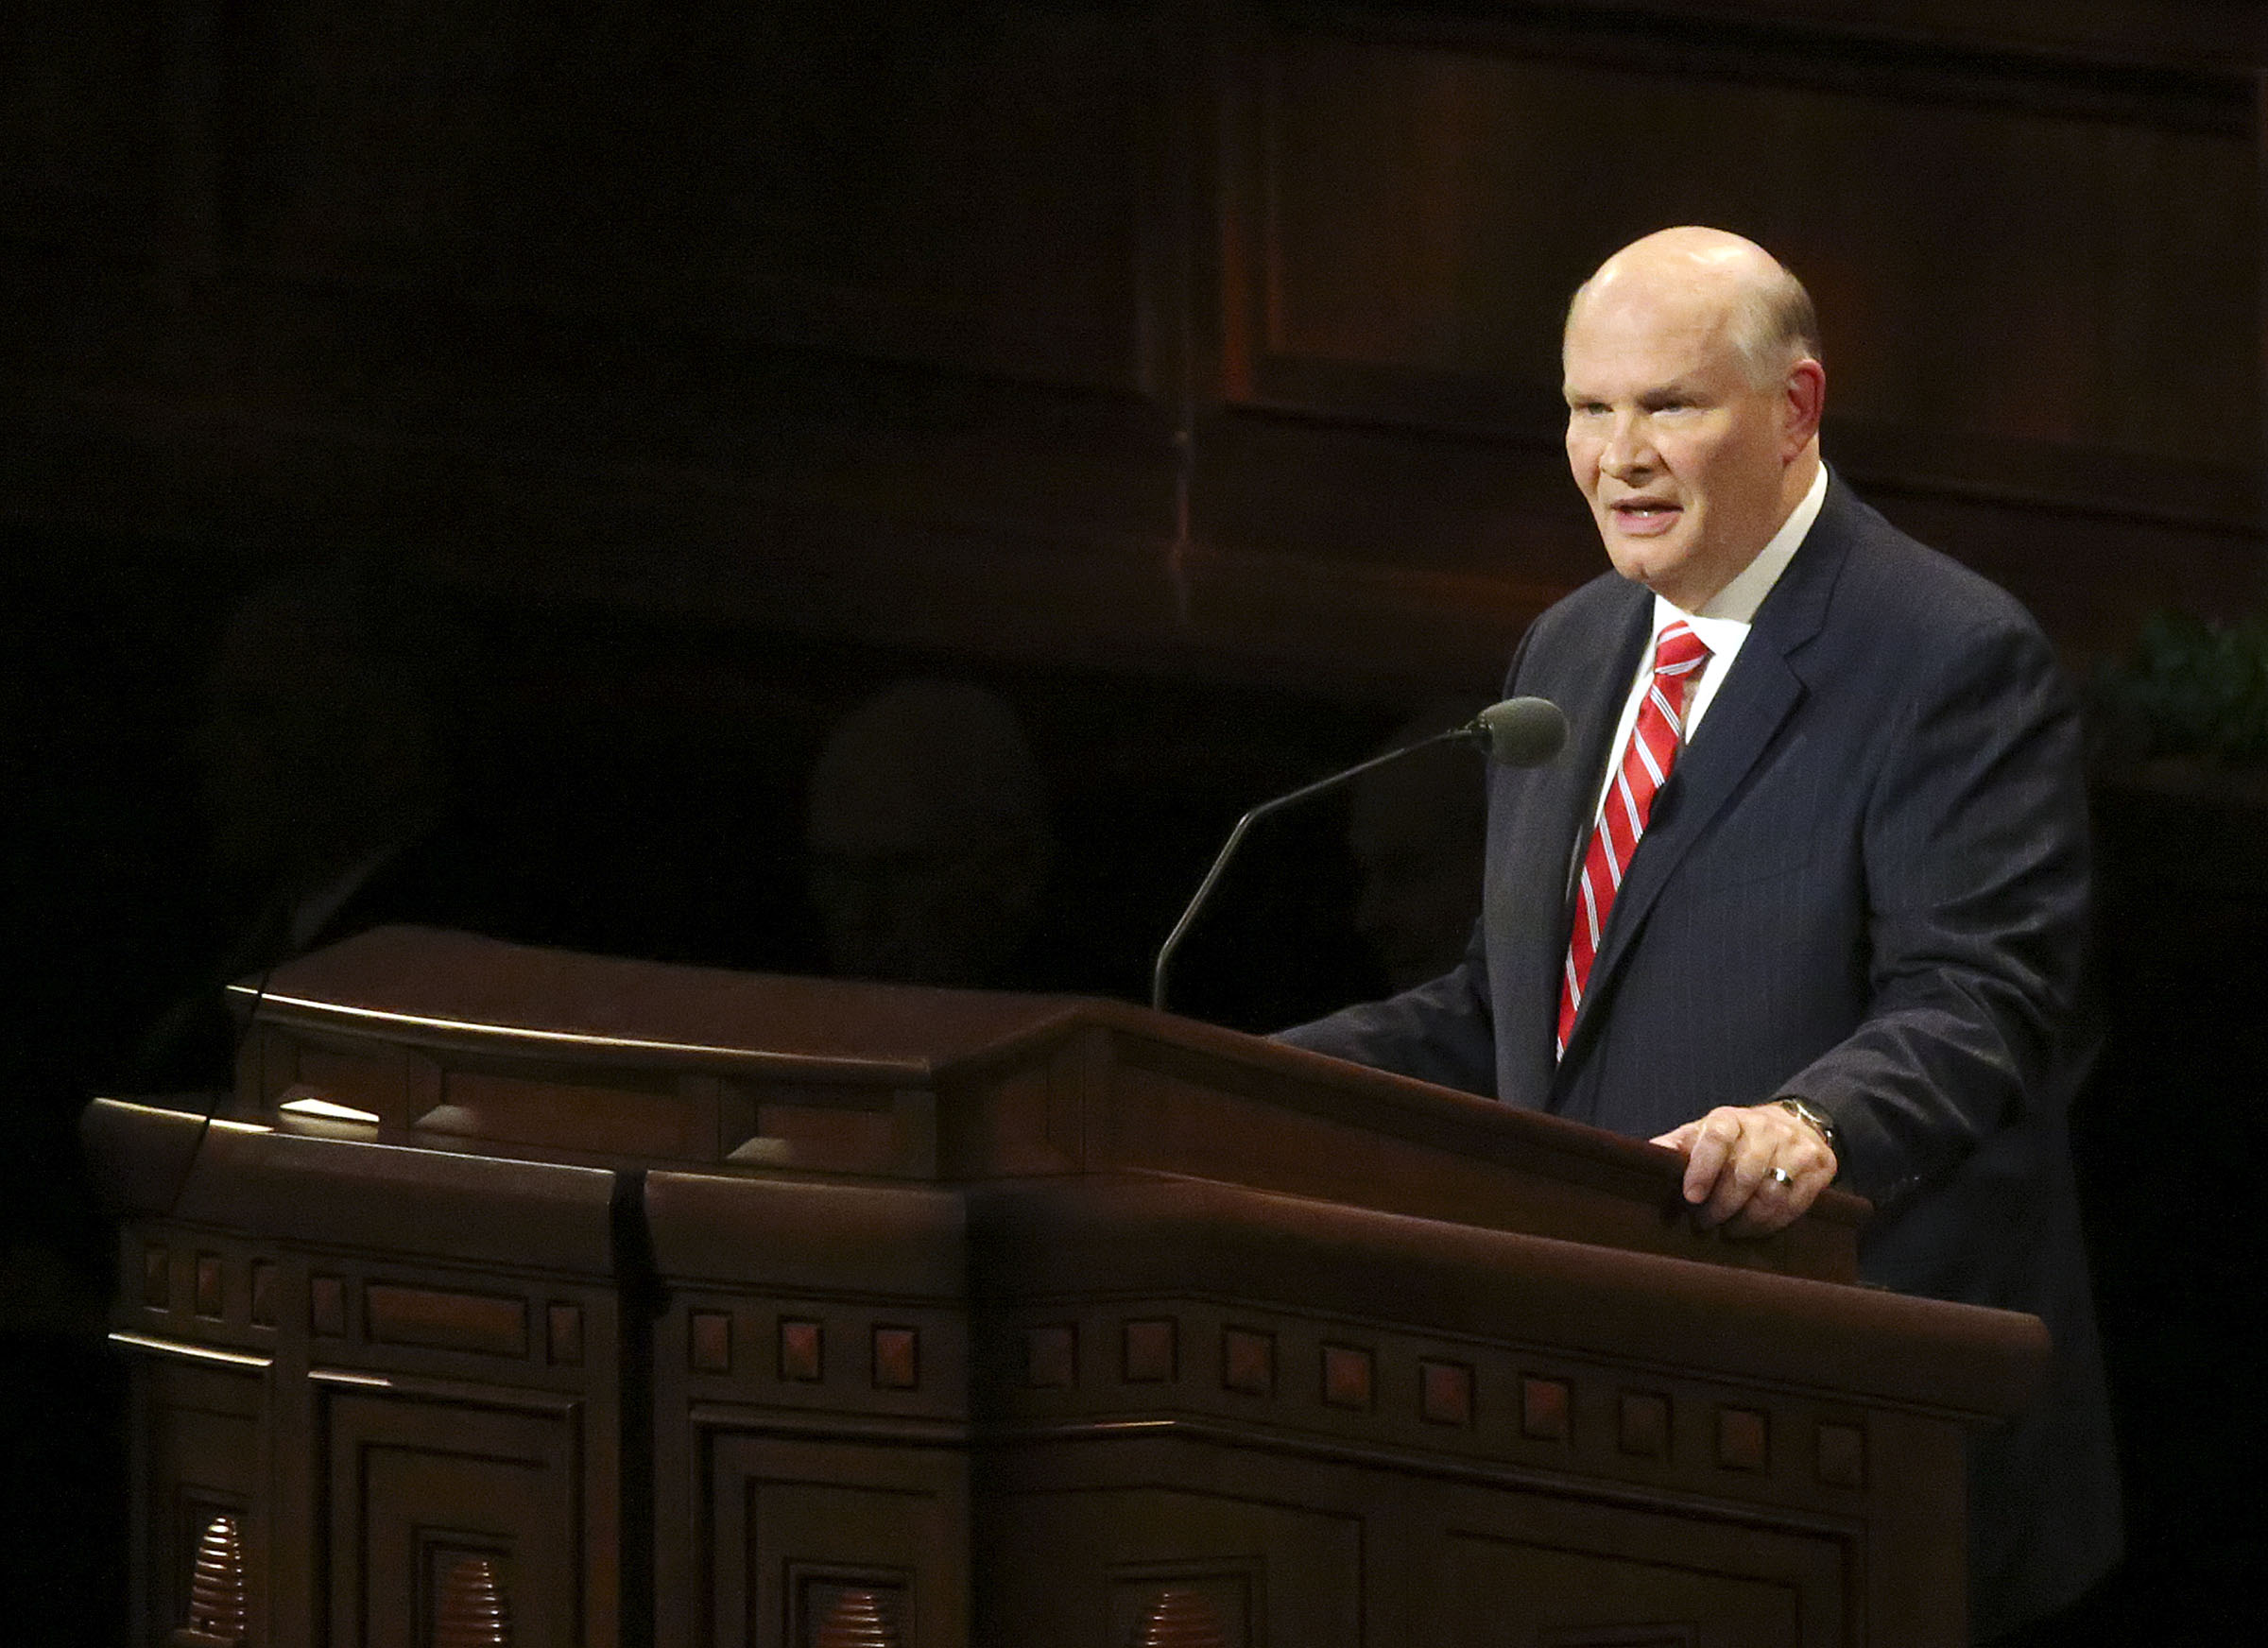 Elder Dale G. Renlund of the Quorum of the Twelve Apostles speaks during the Sunday afternoon session of the 188th Semiannual General Conference of The Church of Jesus Christ of Latter-day Saints in the Conference Center in downtown Salt Lake City on Sunday, Oct. 7, 2018.